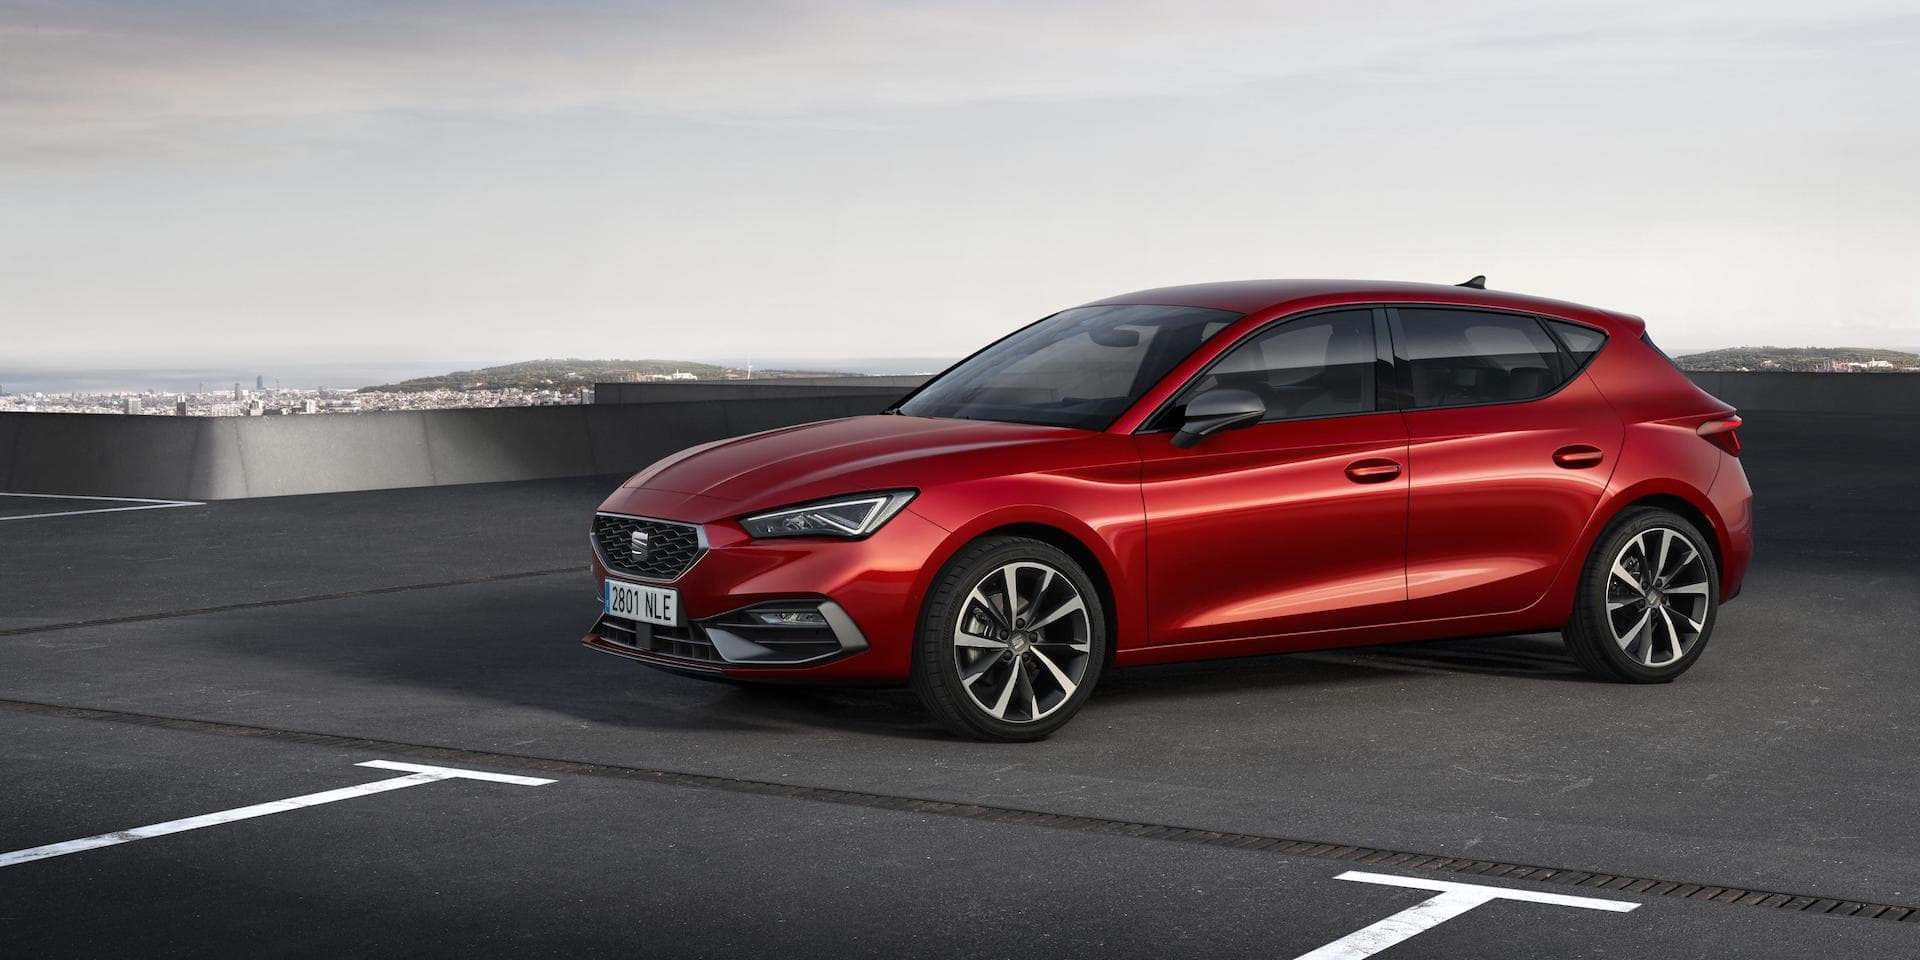 2020 SEAT Leon revealed | The Car Expert